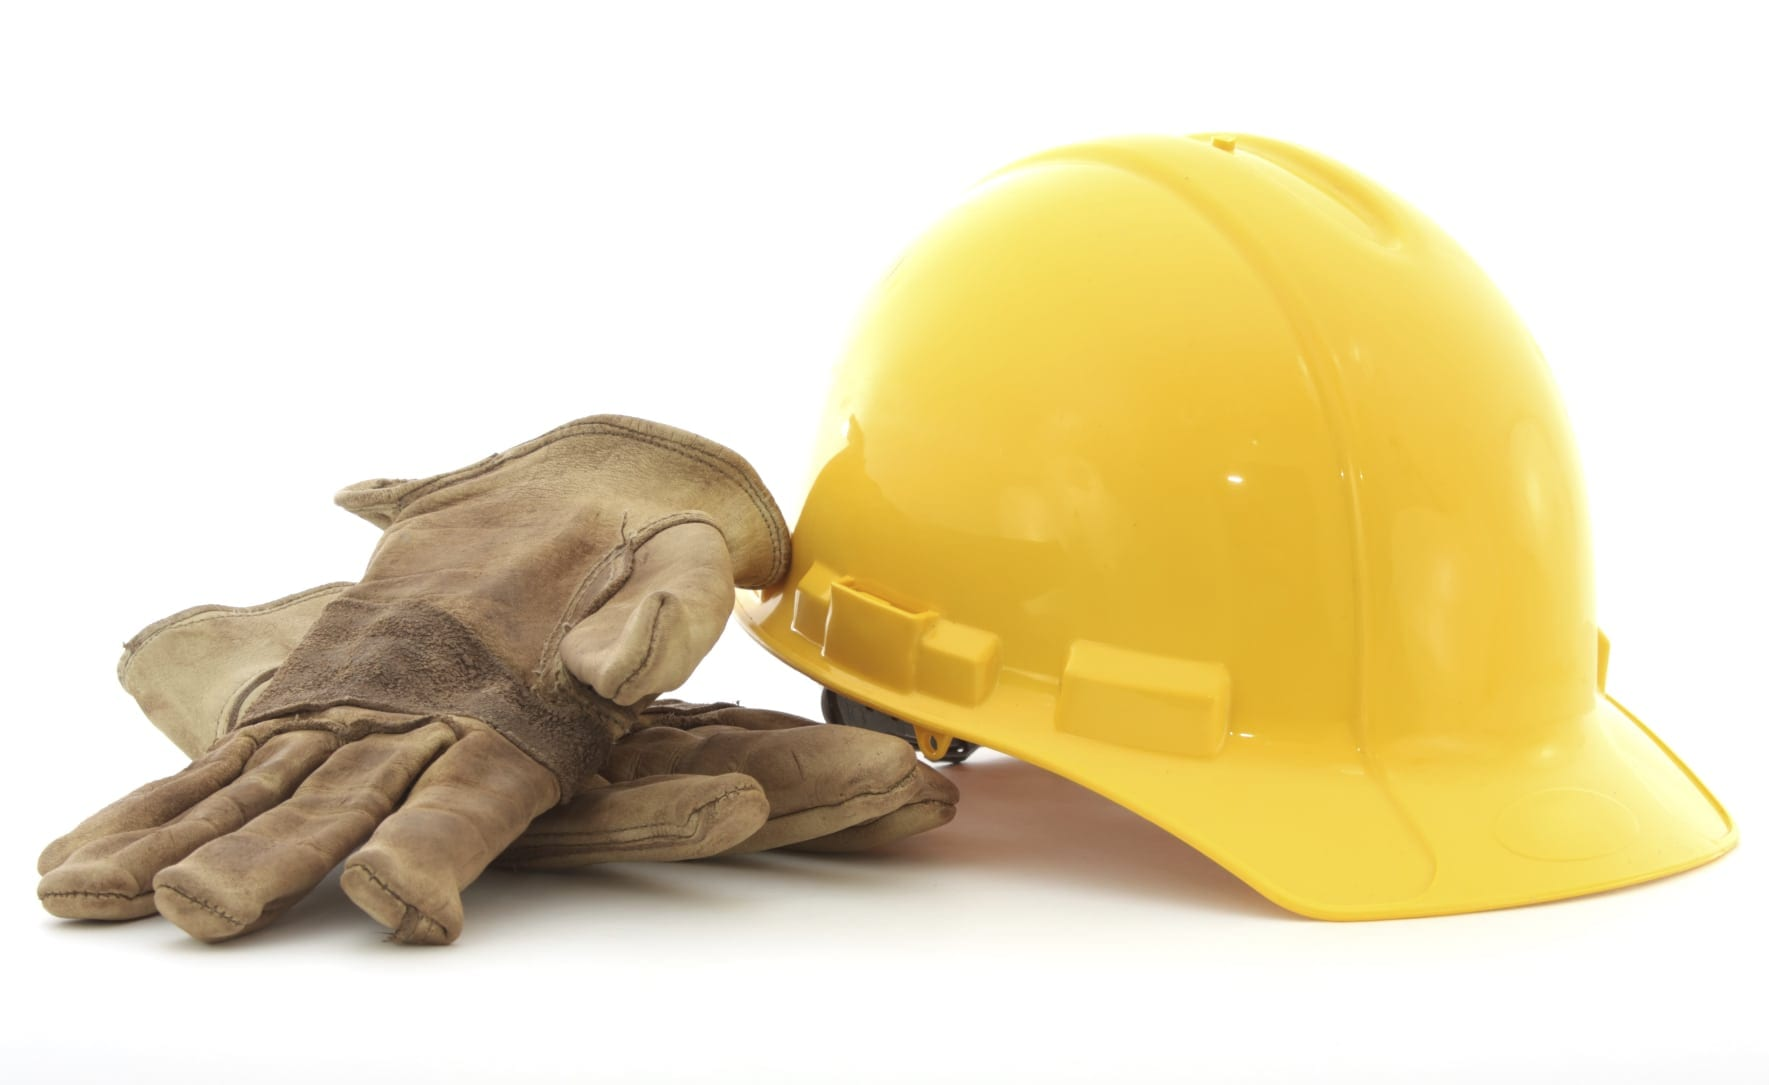 Colorado Work Injury Lawyers: Answering Three Workers' Compensation Questions